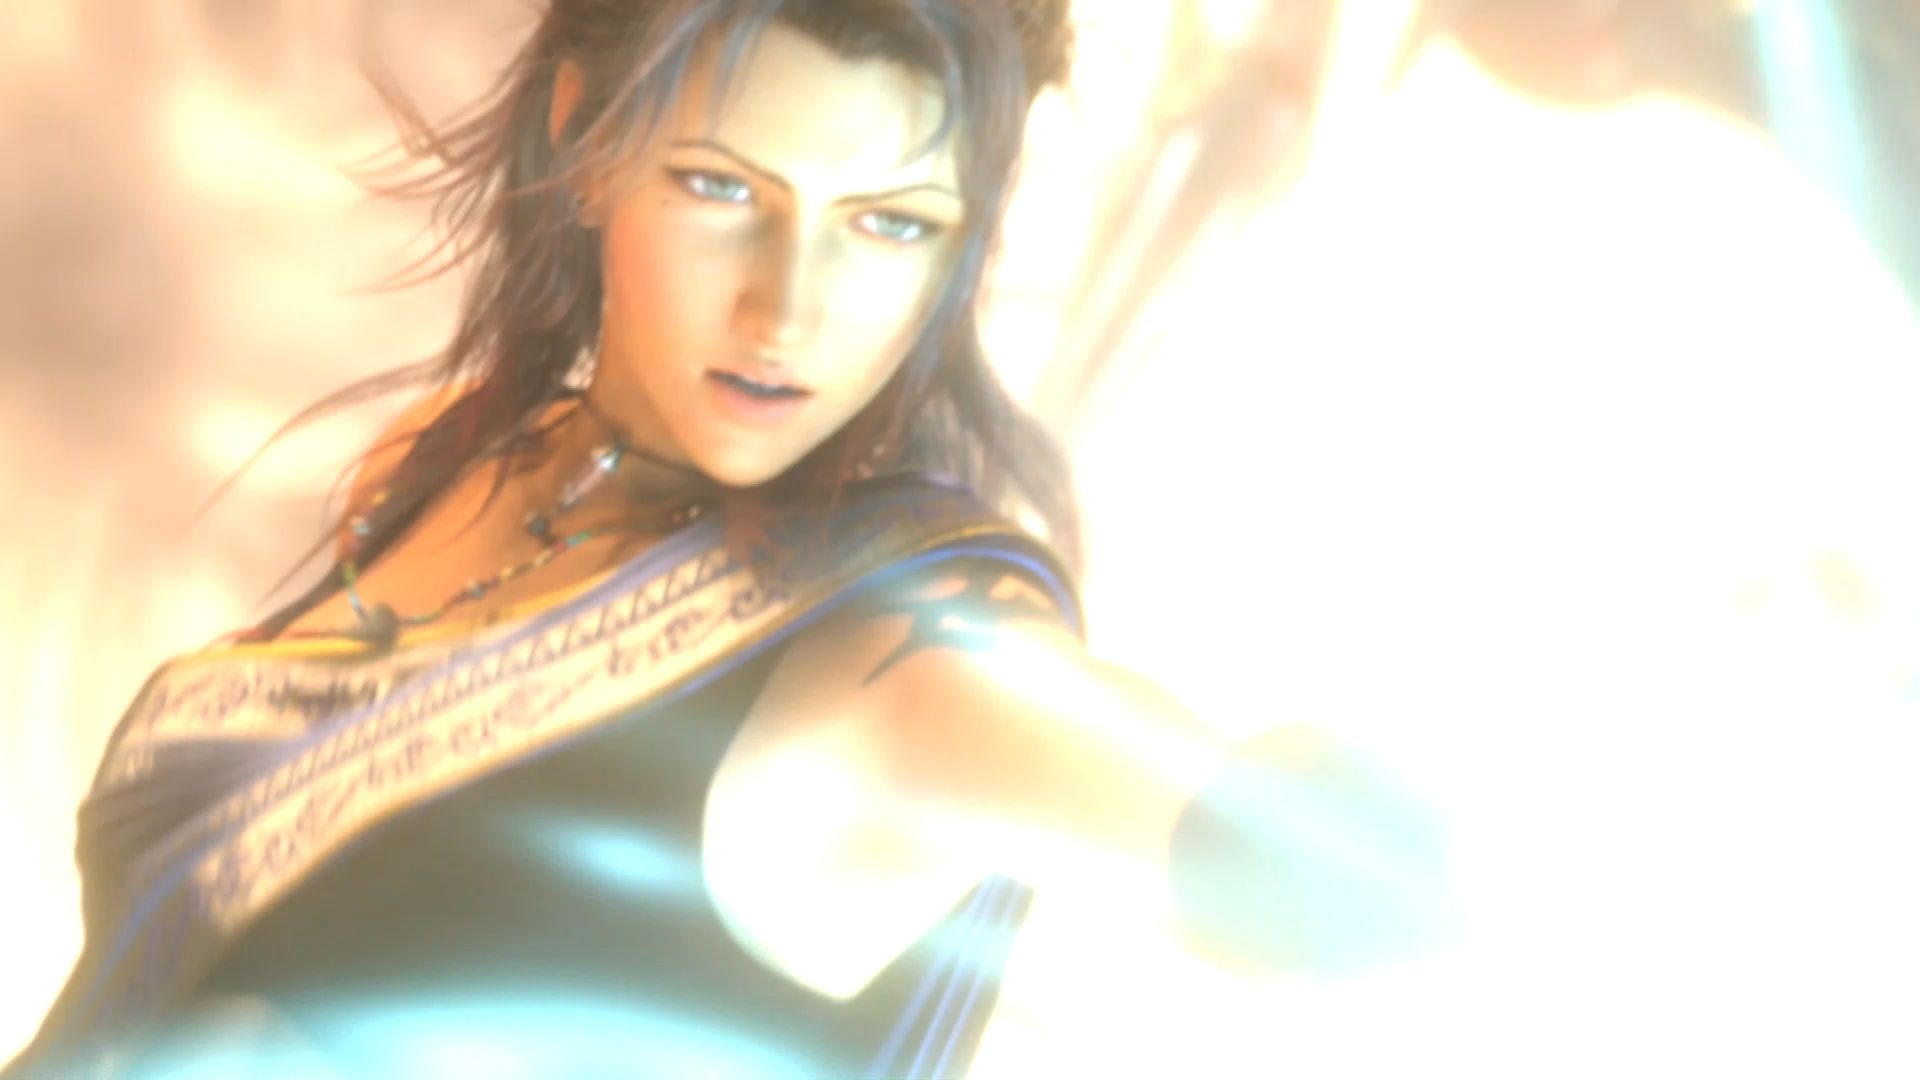 Pin by llitastar on final fantasy xiii pinterest final fantasy voltagebd Image collections